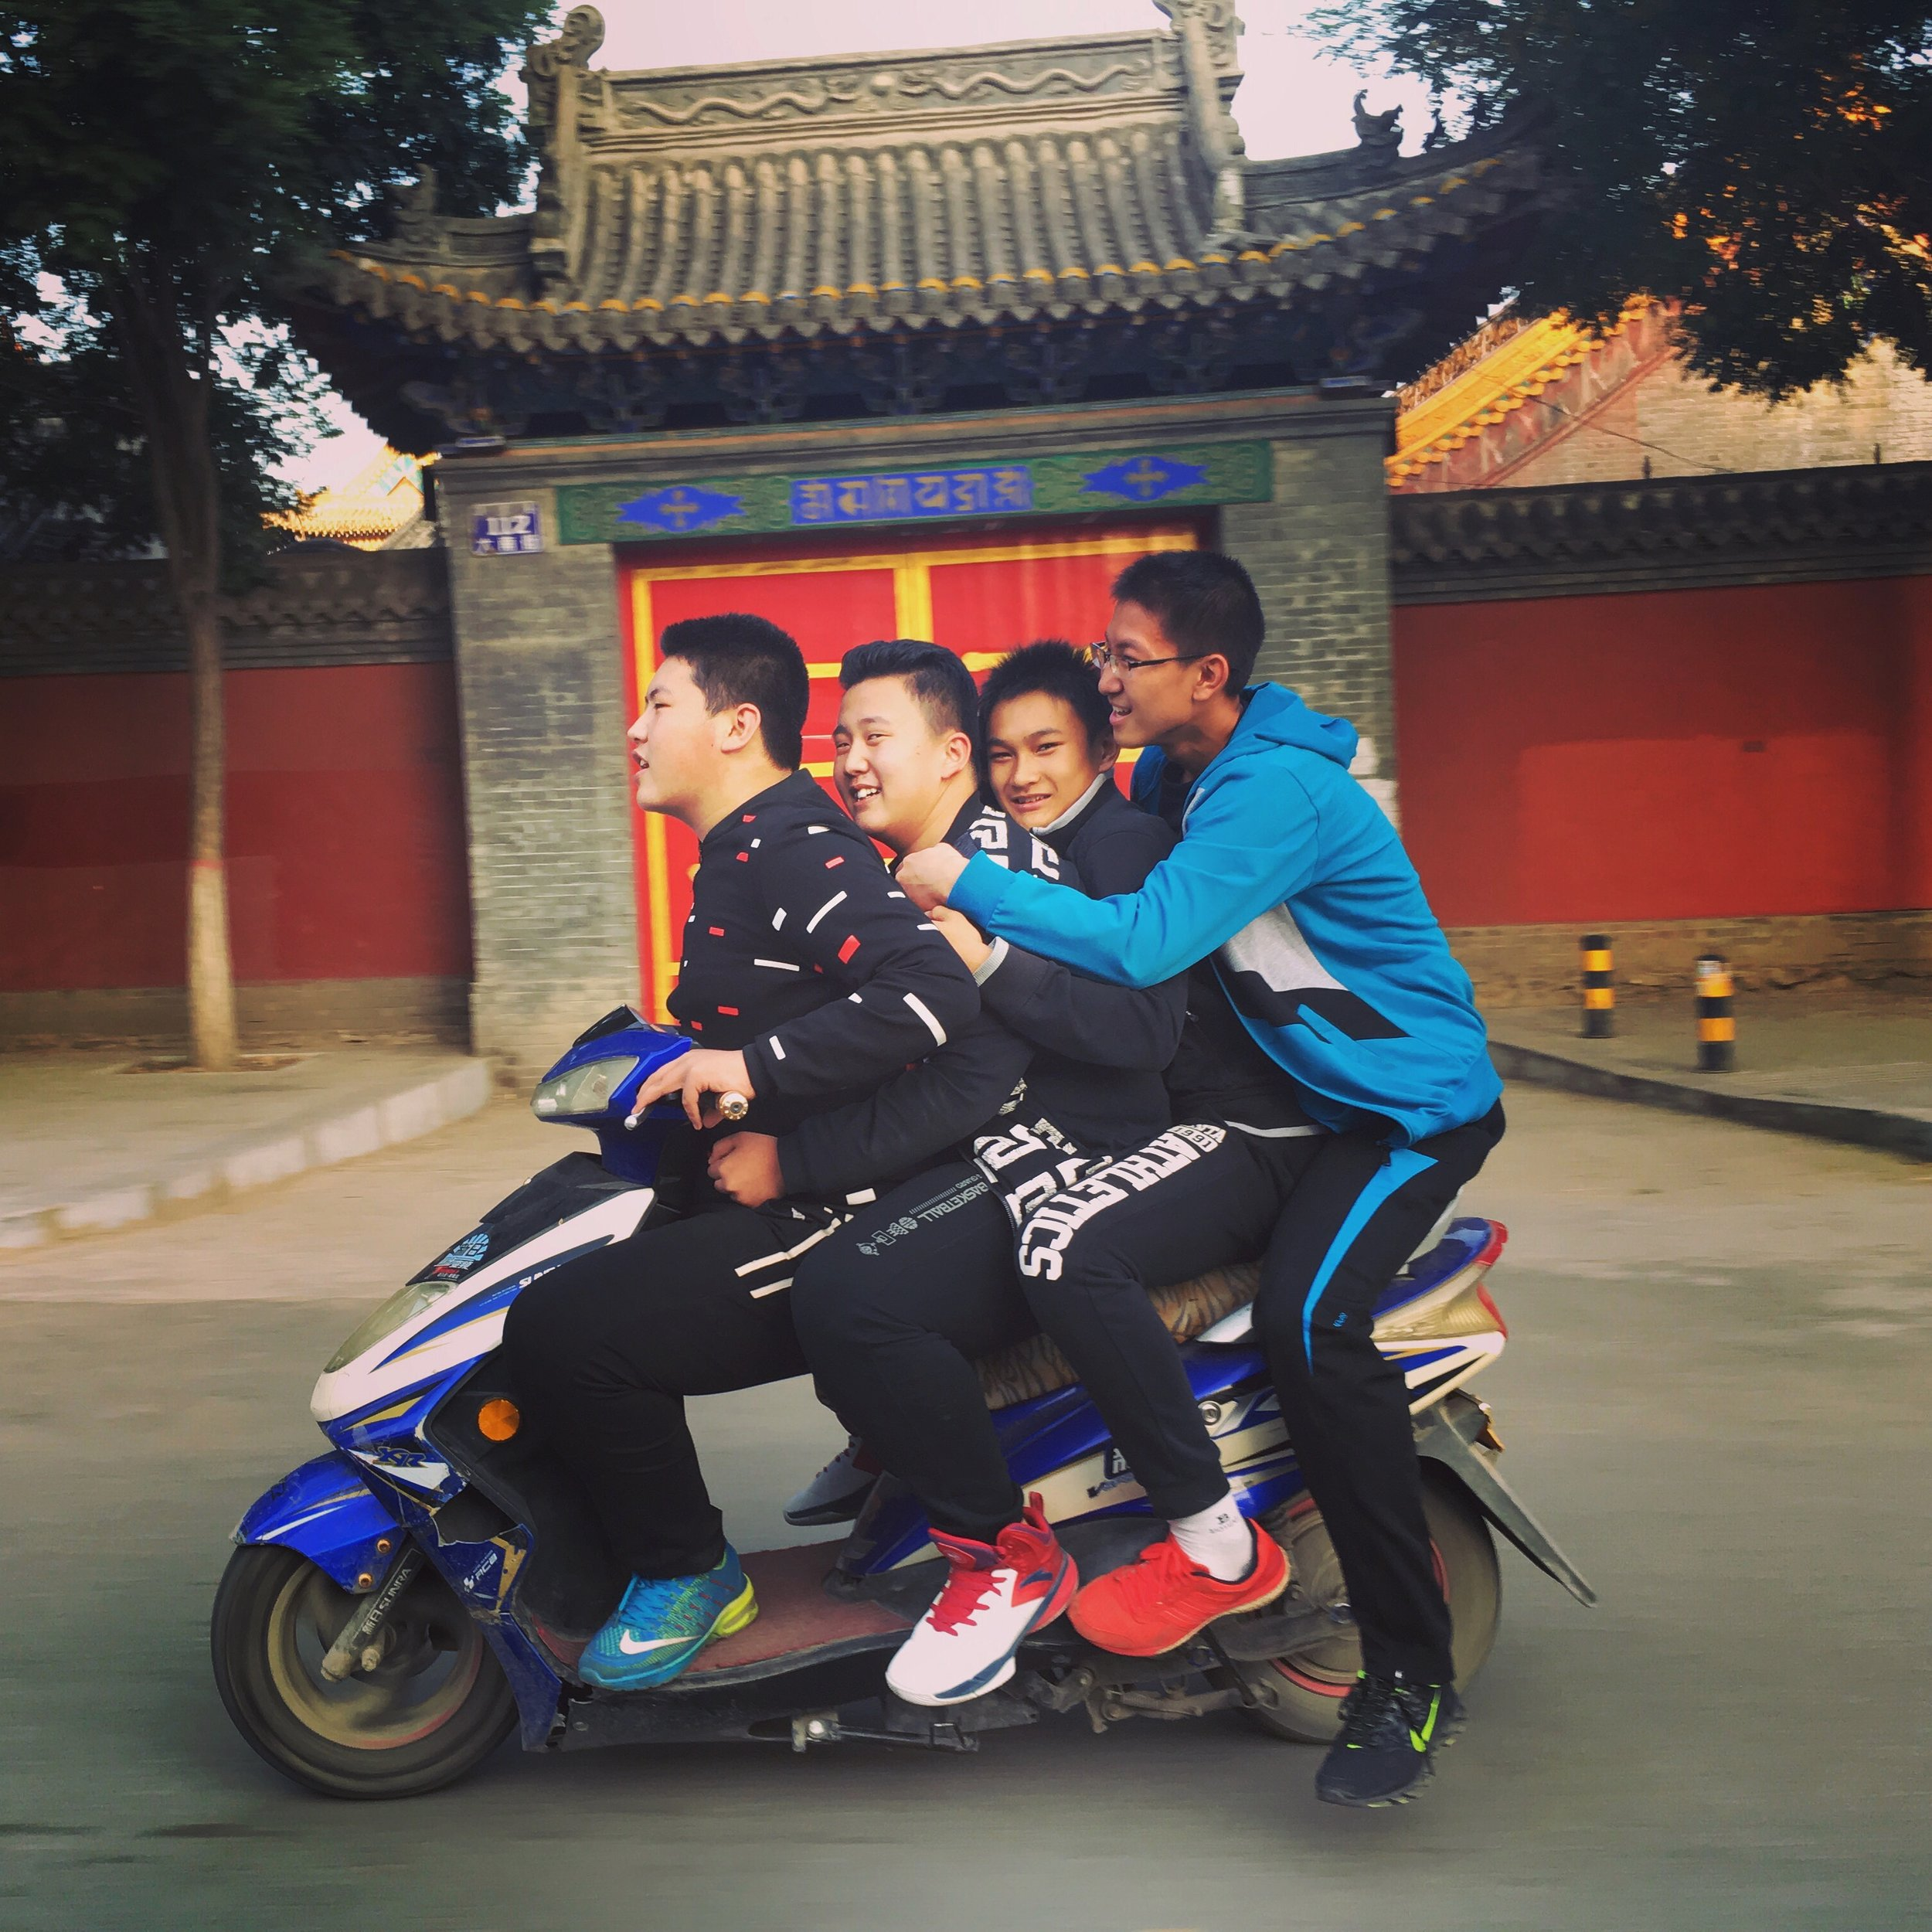 Four boys ride a motorbike in Hohhot, Inner Mongolia.